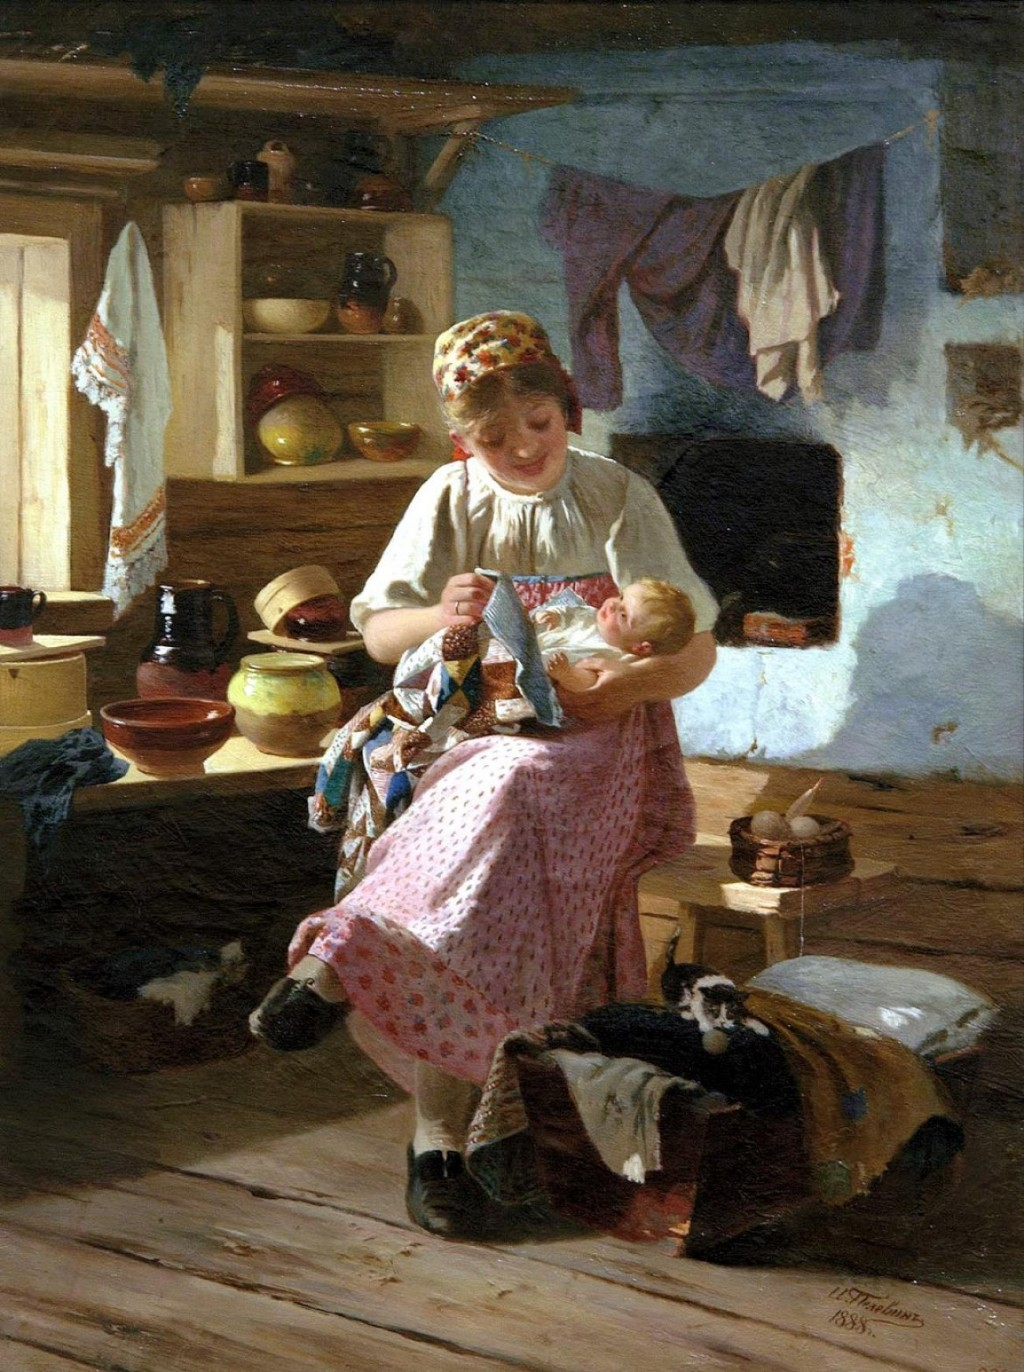 ivan andreievich pelevin 1840 � 1917 russian i am a child